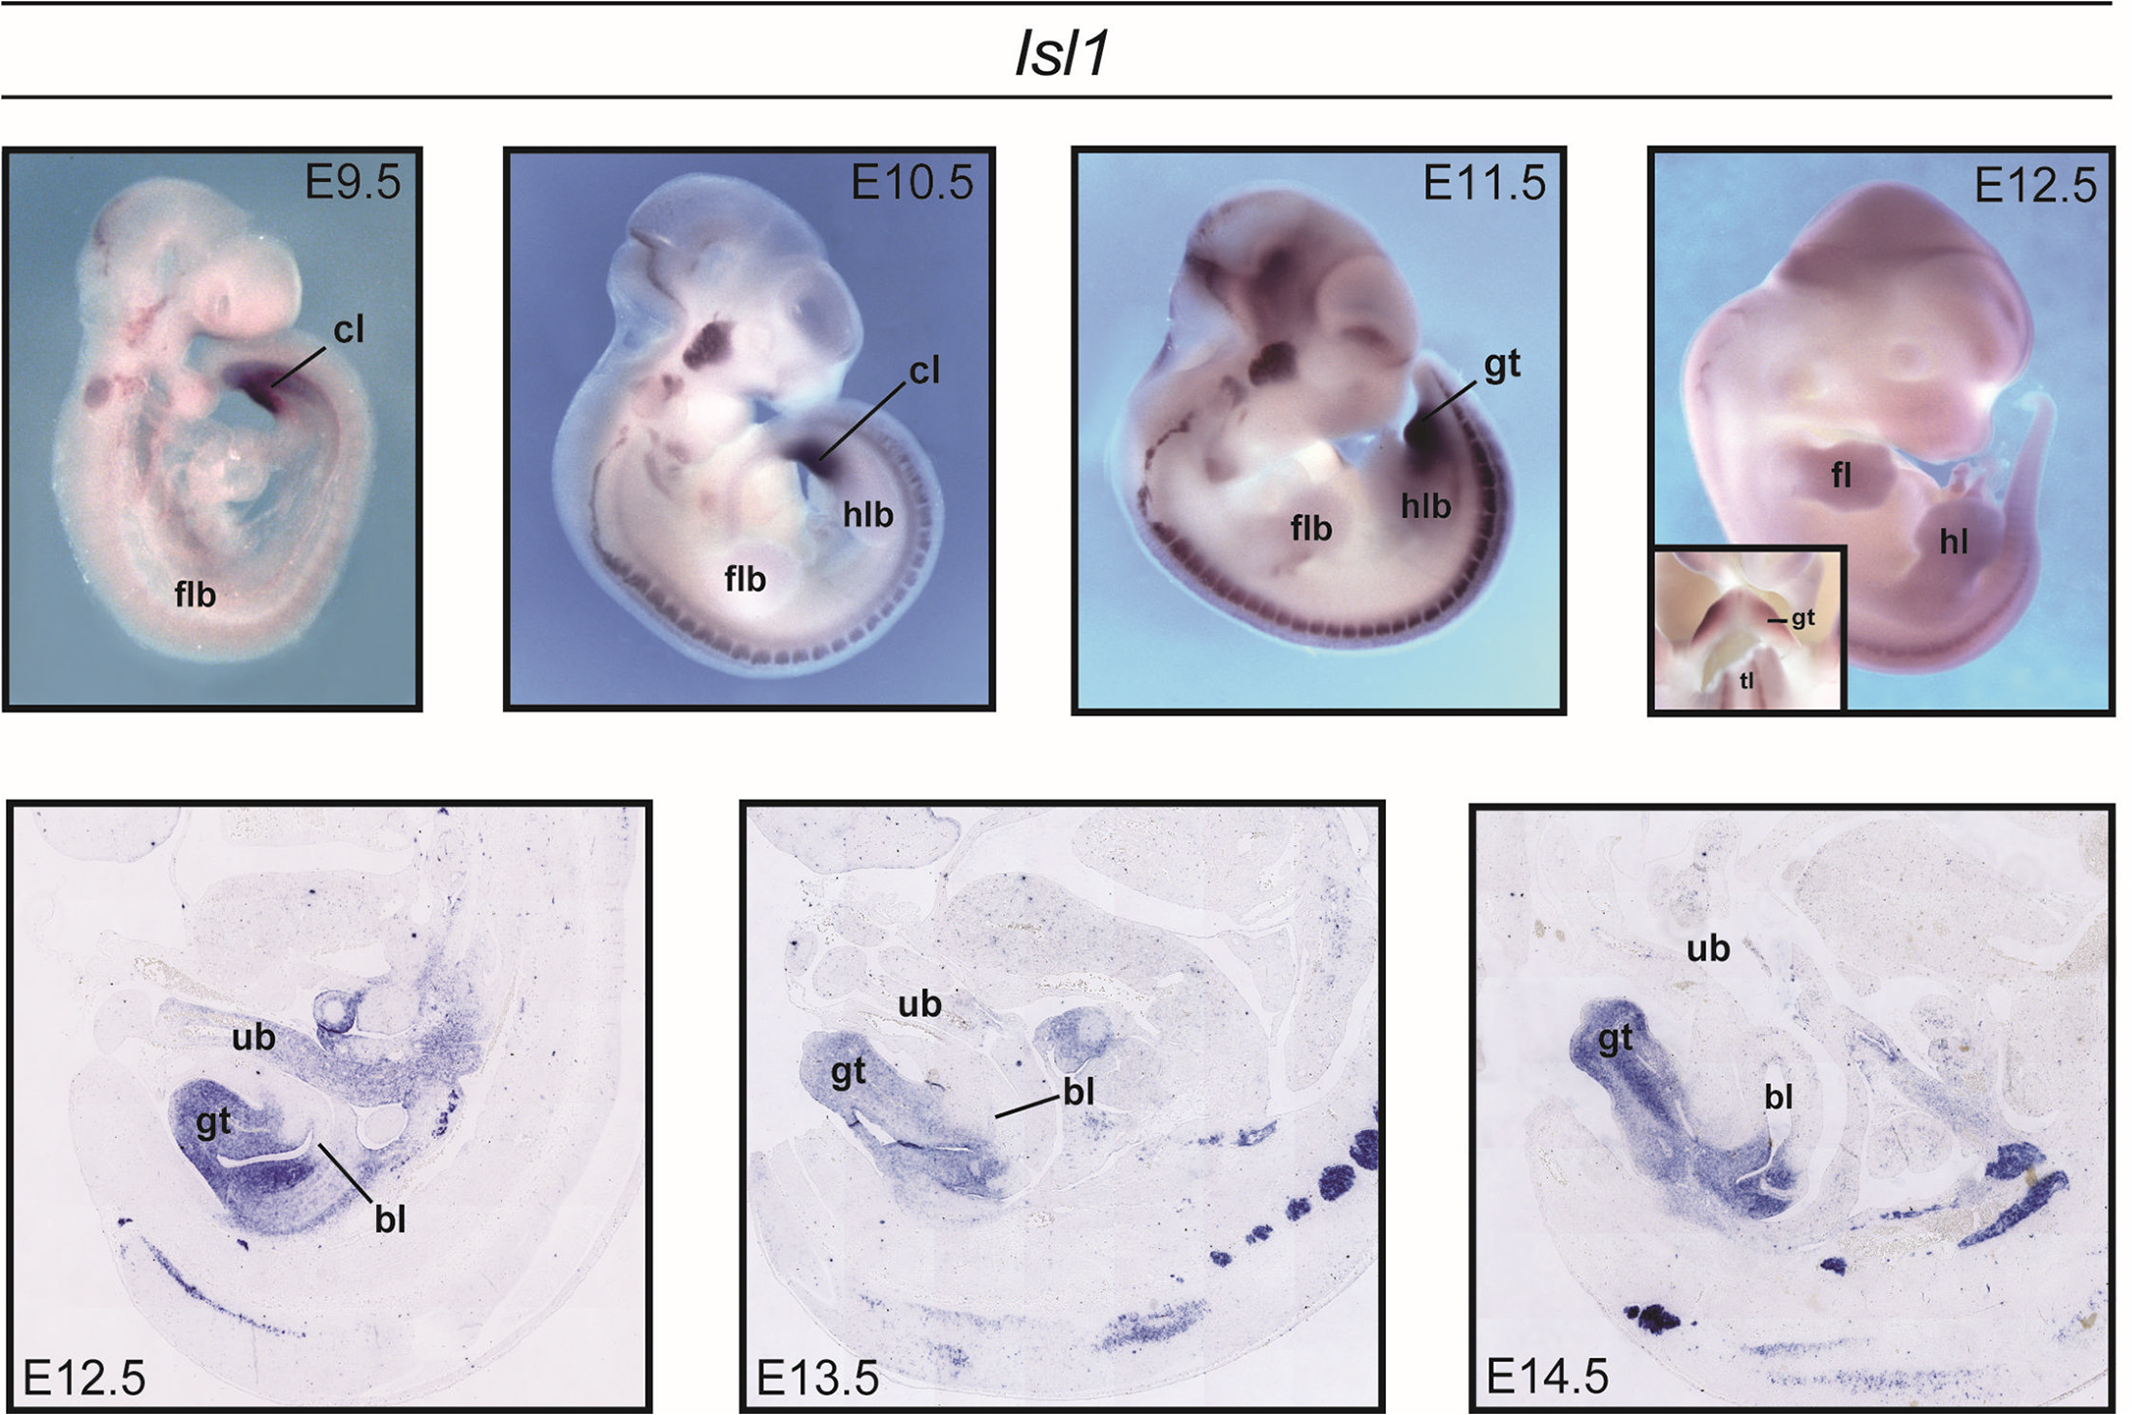 Expression of <i>Isl1</i> during mouse development.